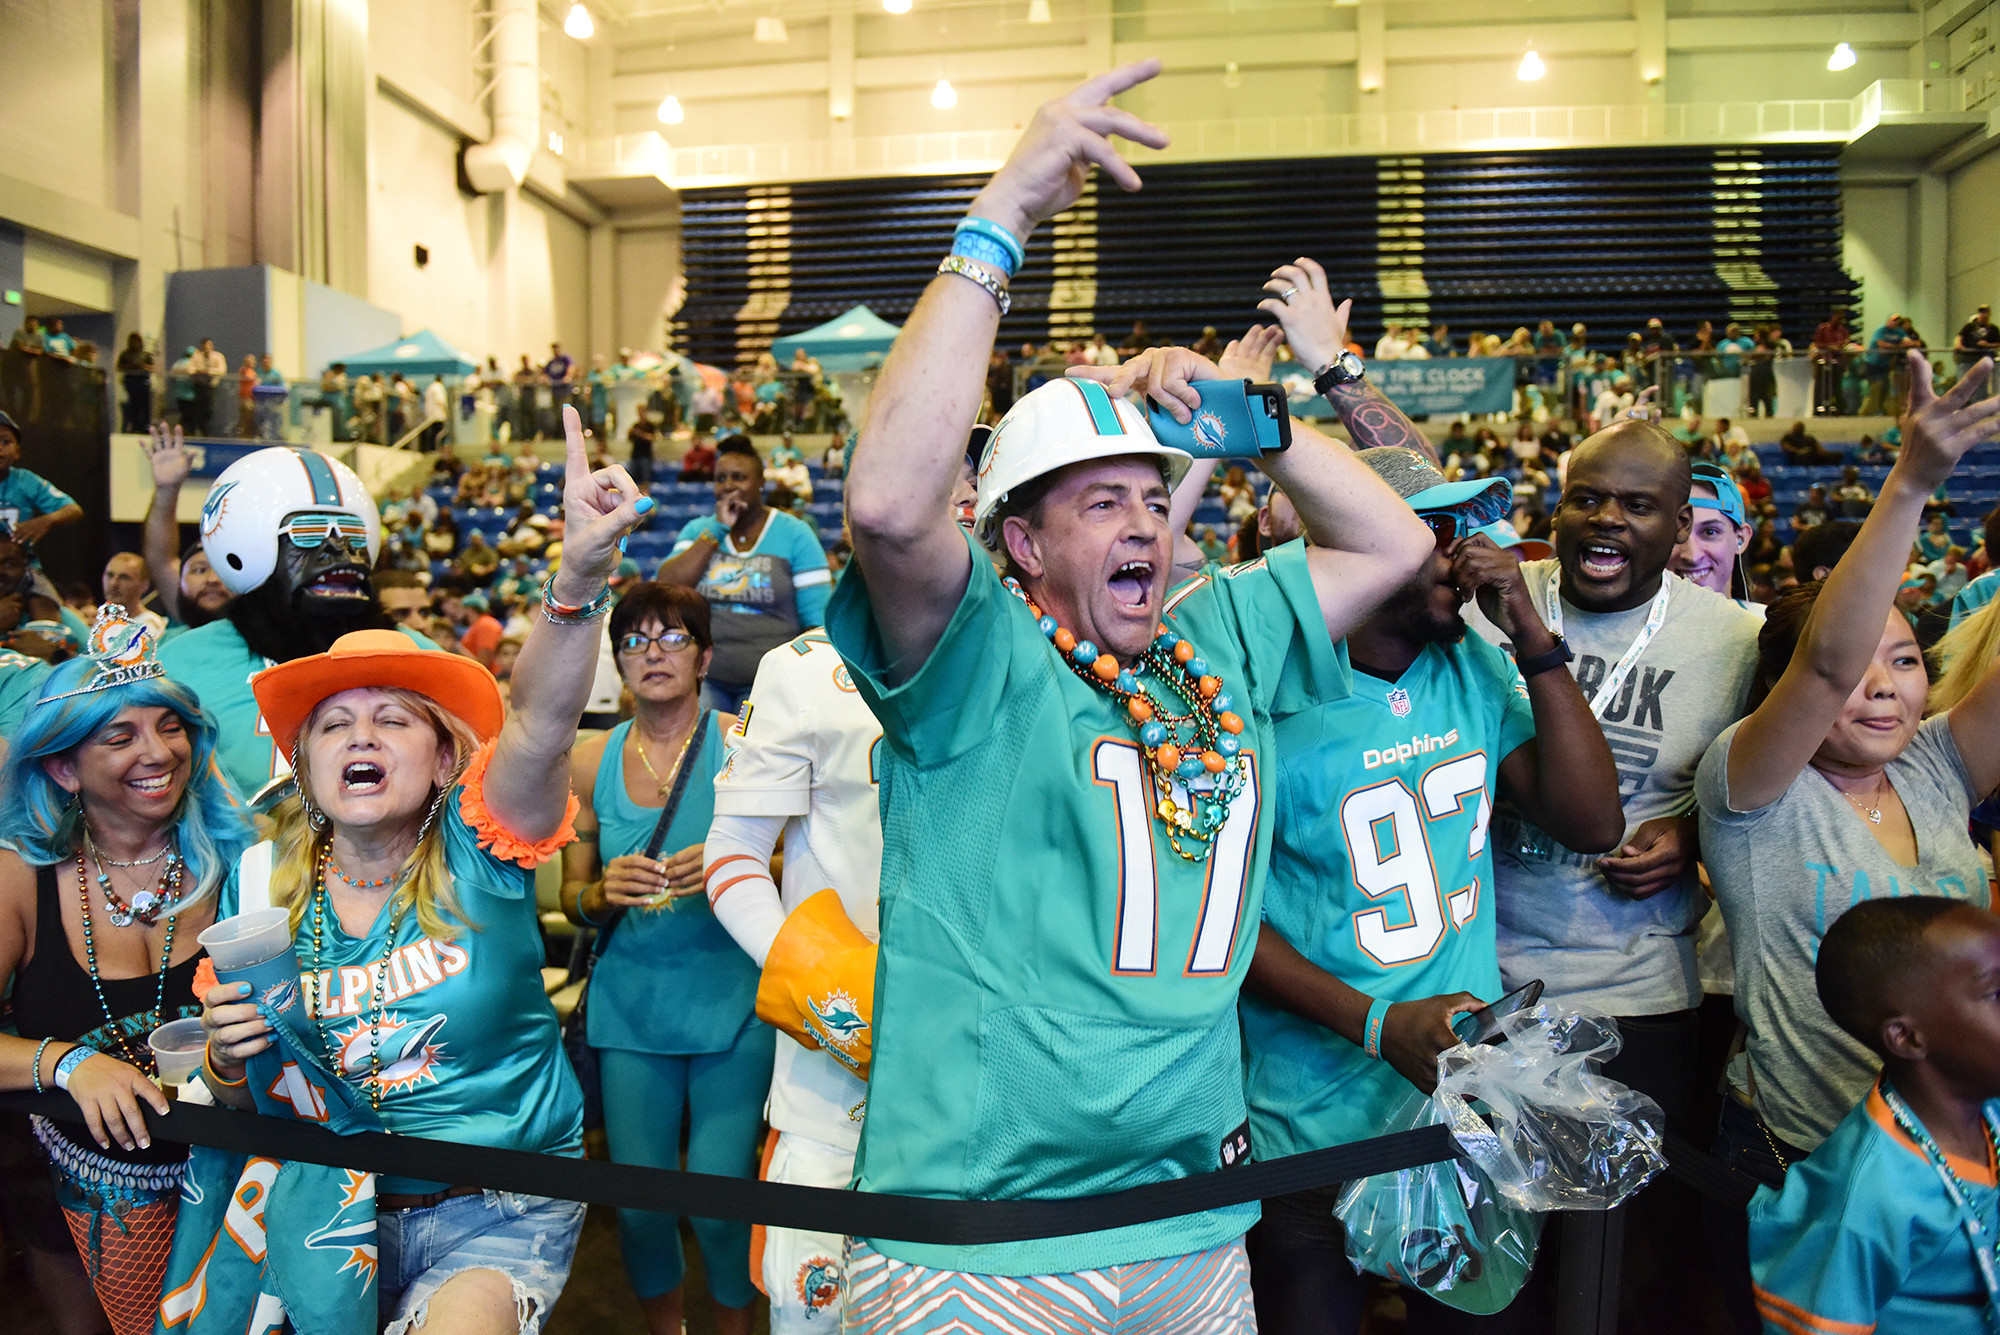 Sfl-fans-react-to-dolphins-first-round-pick-20160428